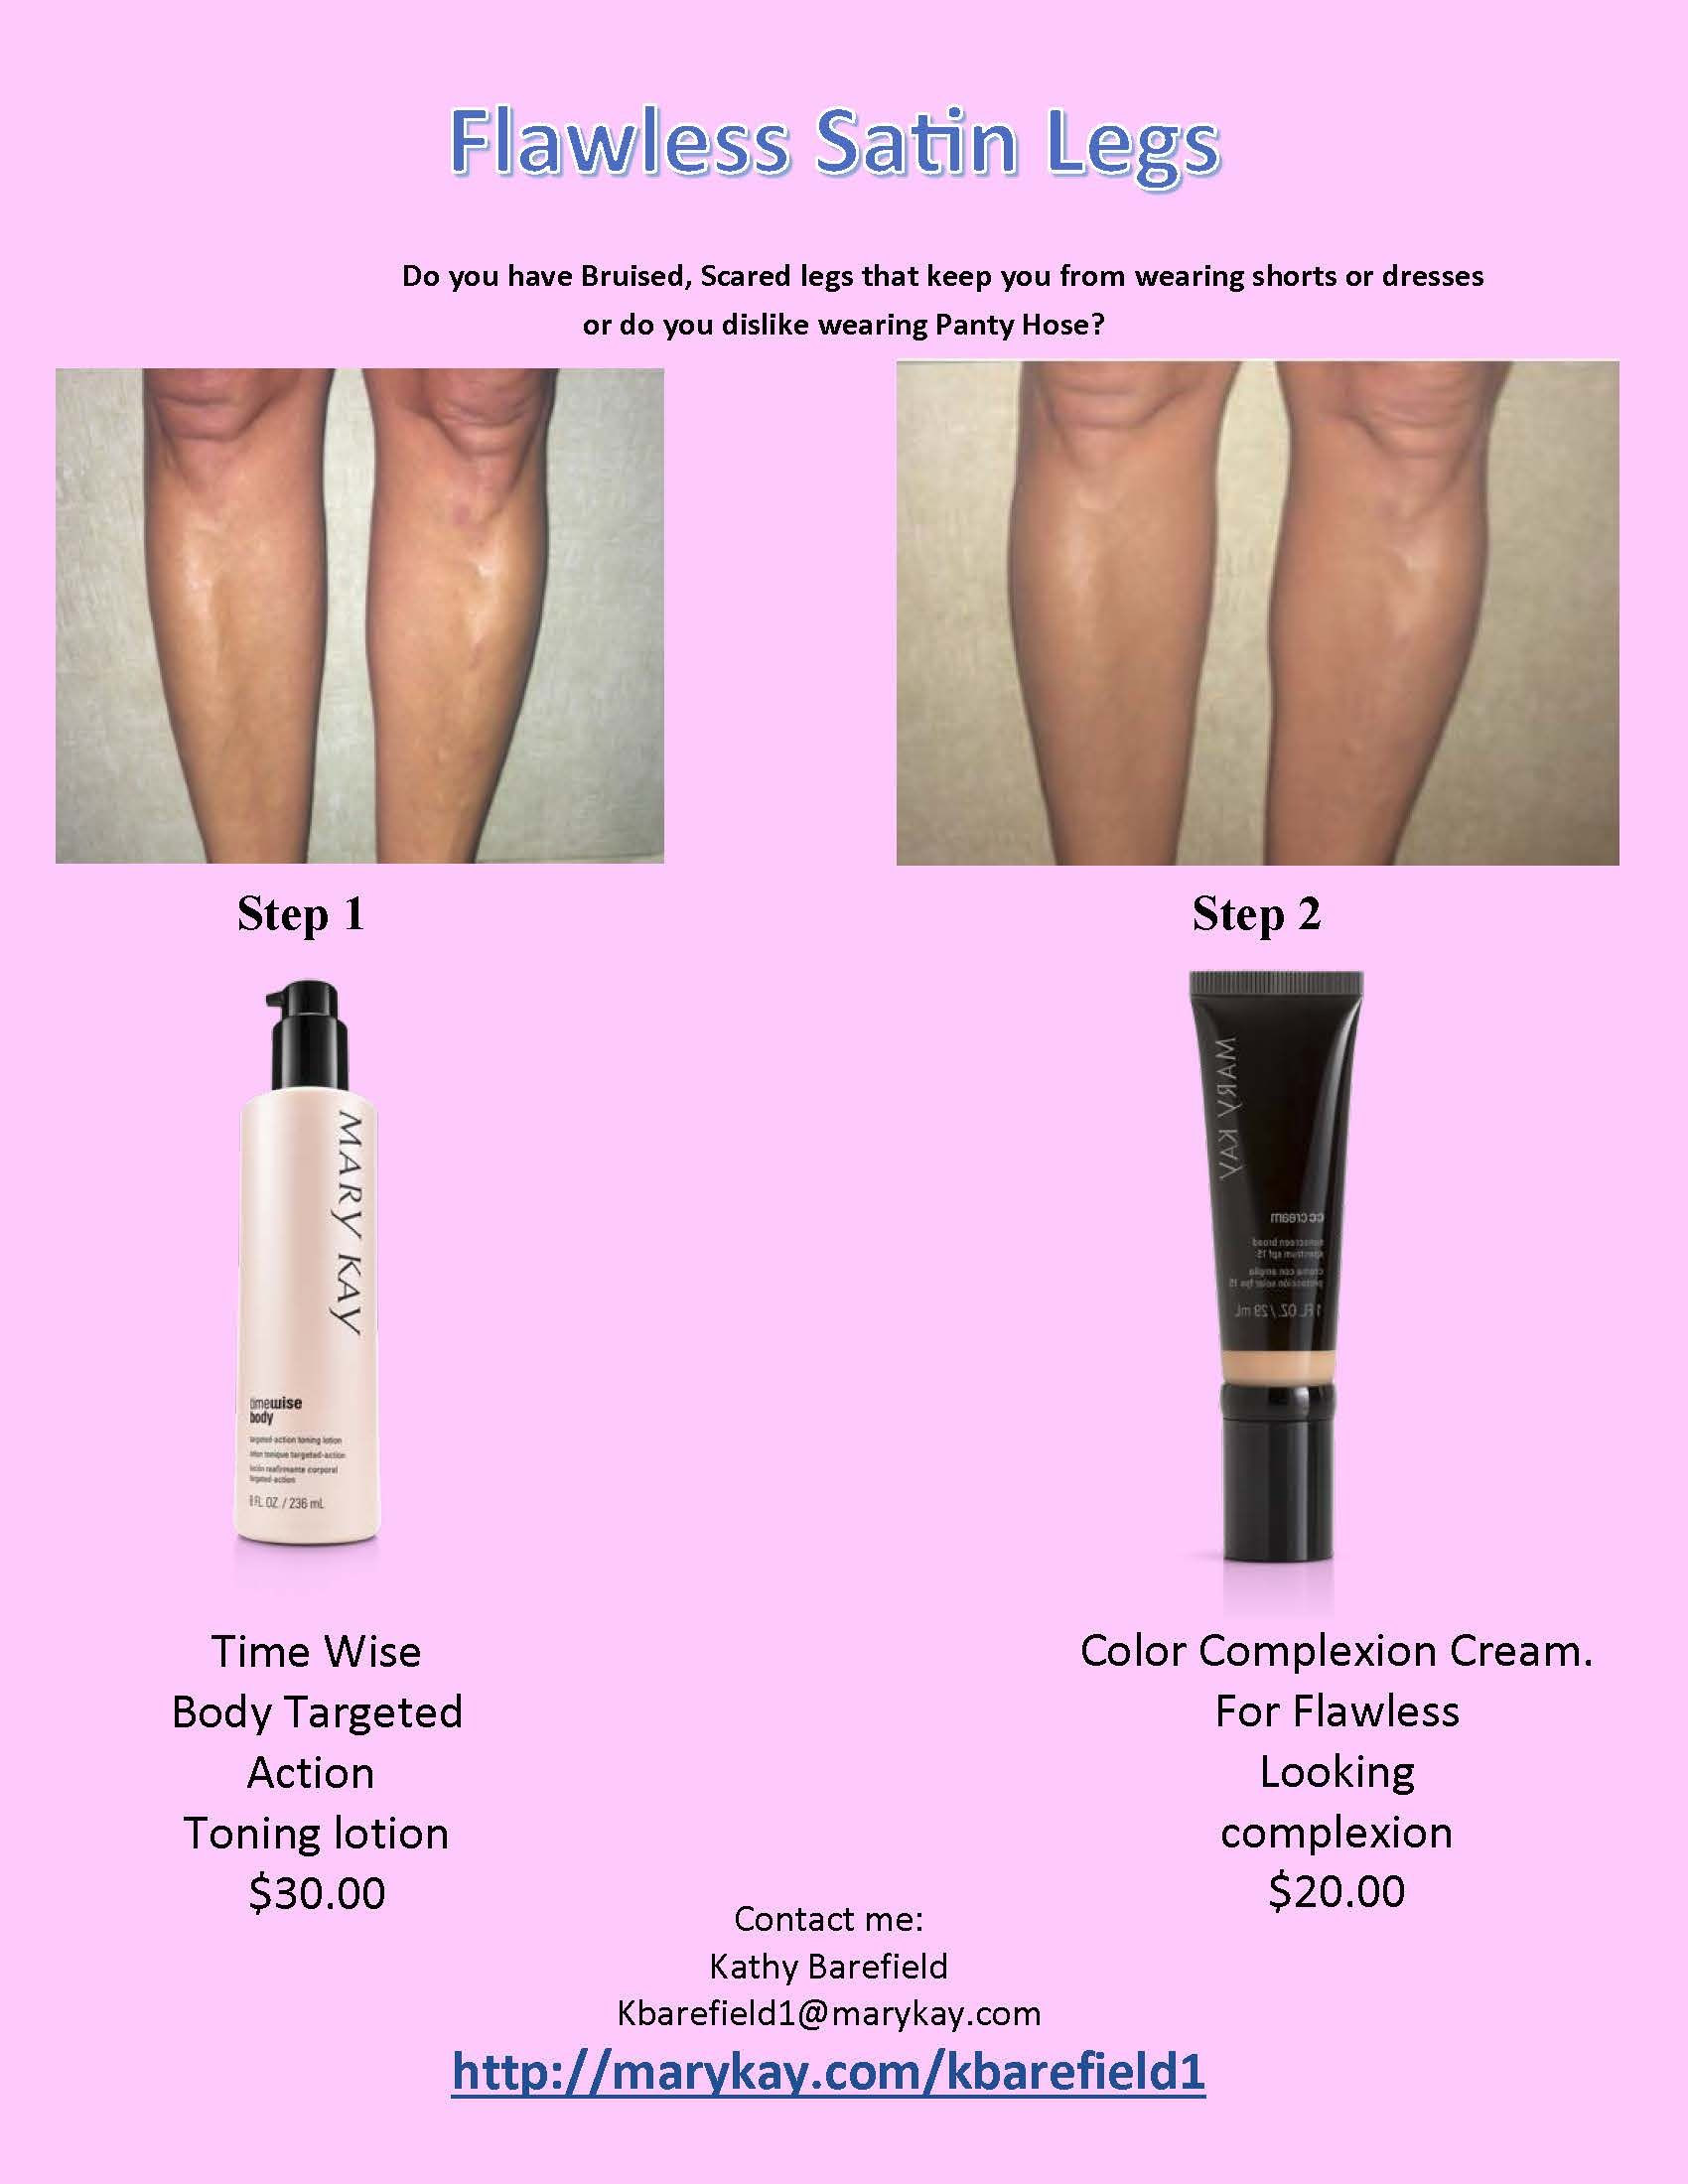 Cover Bruises, cover varicose veins, Have smooth looking